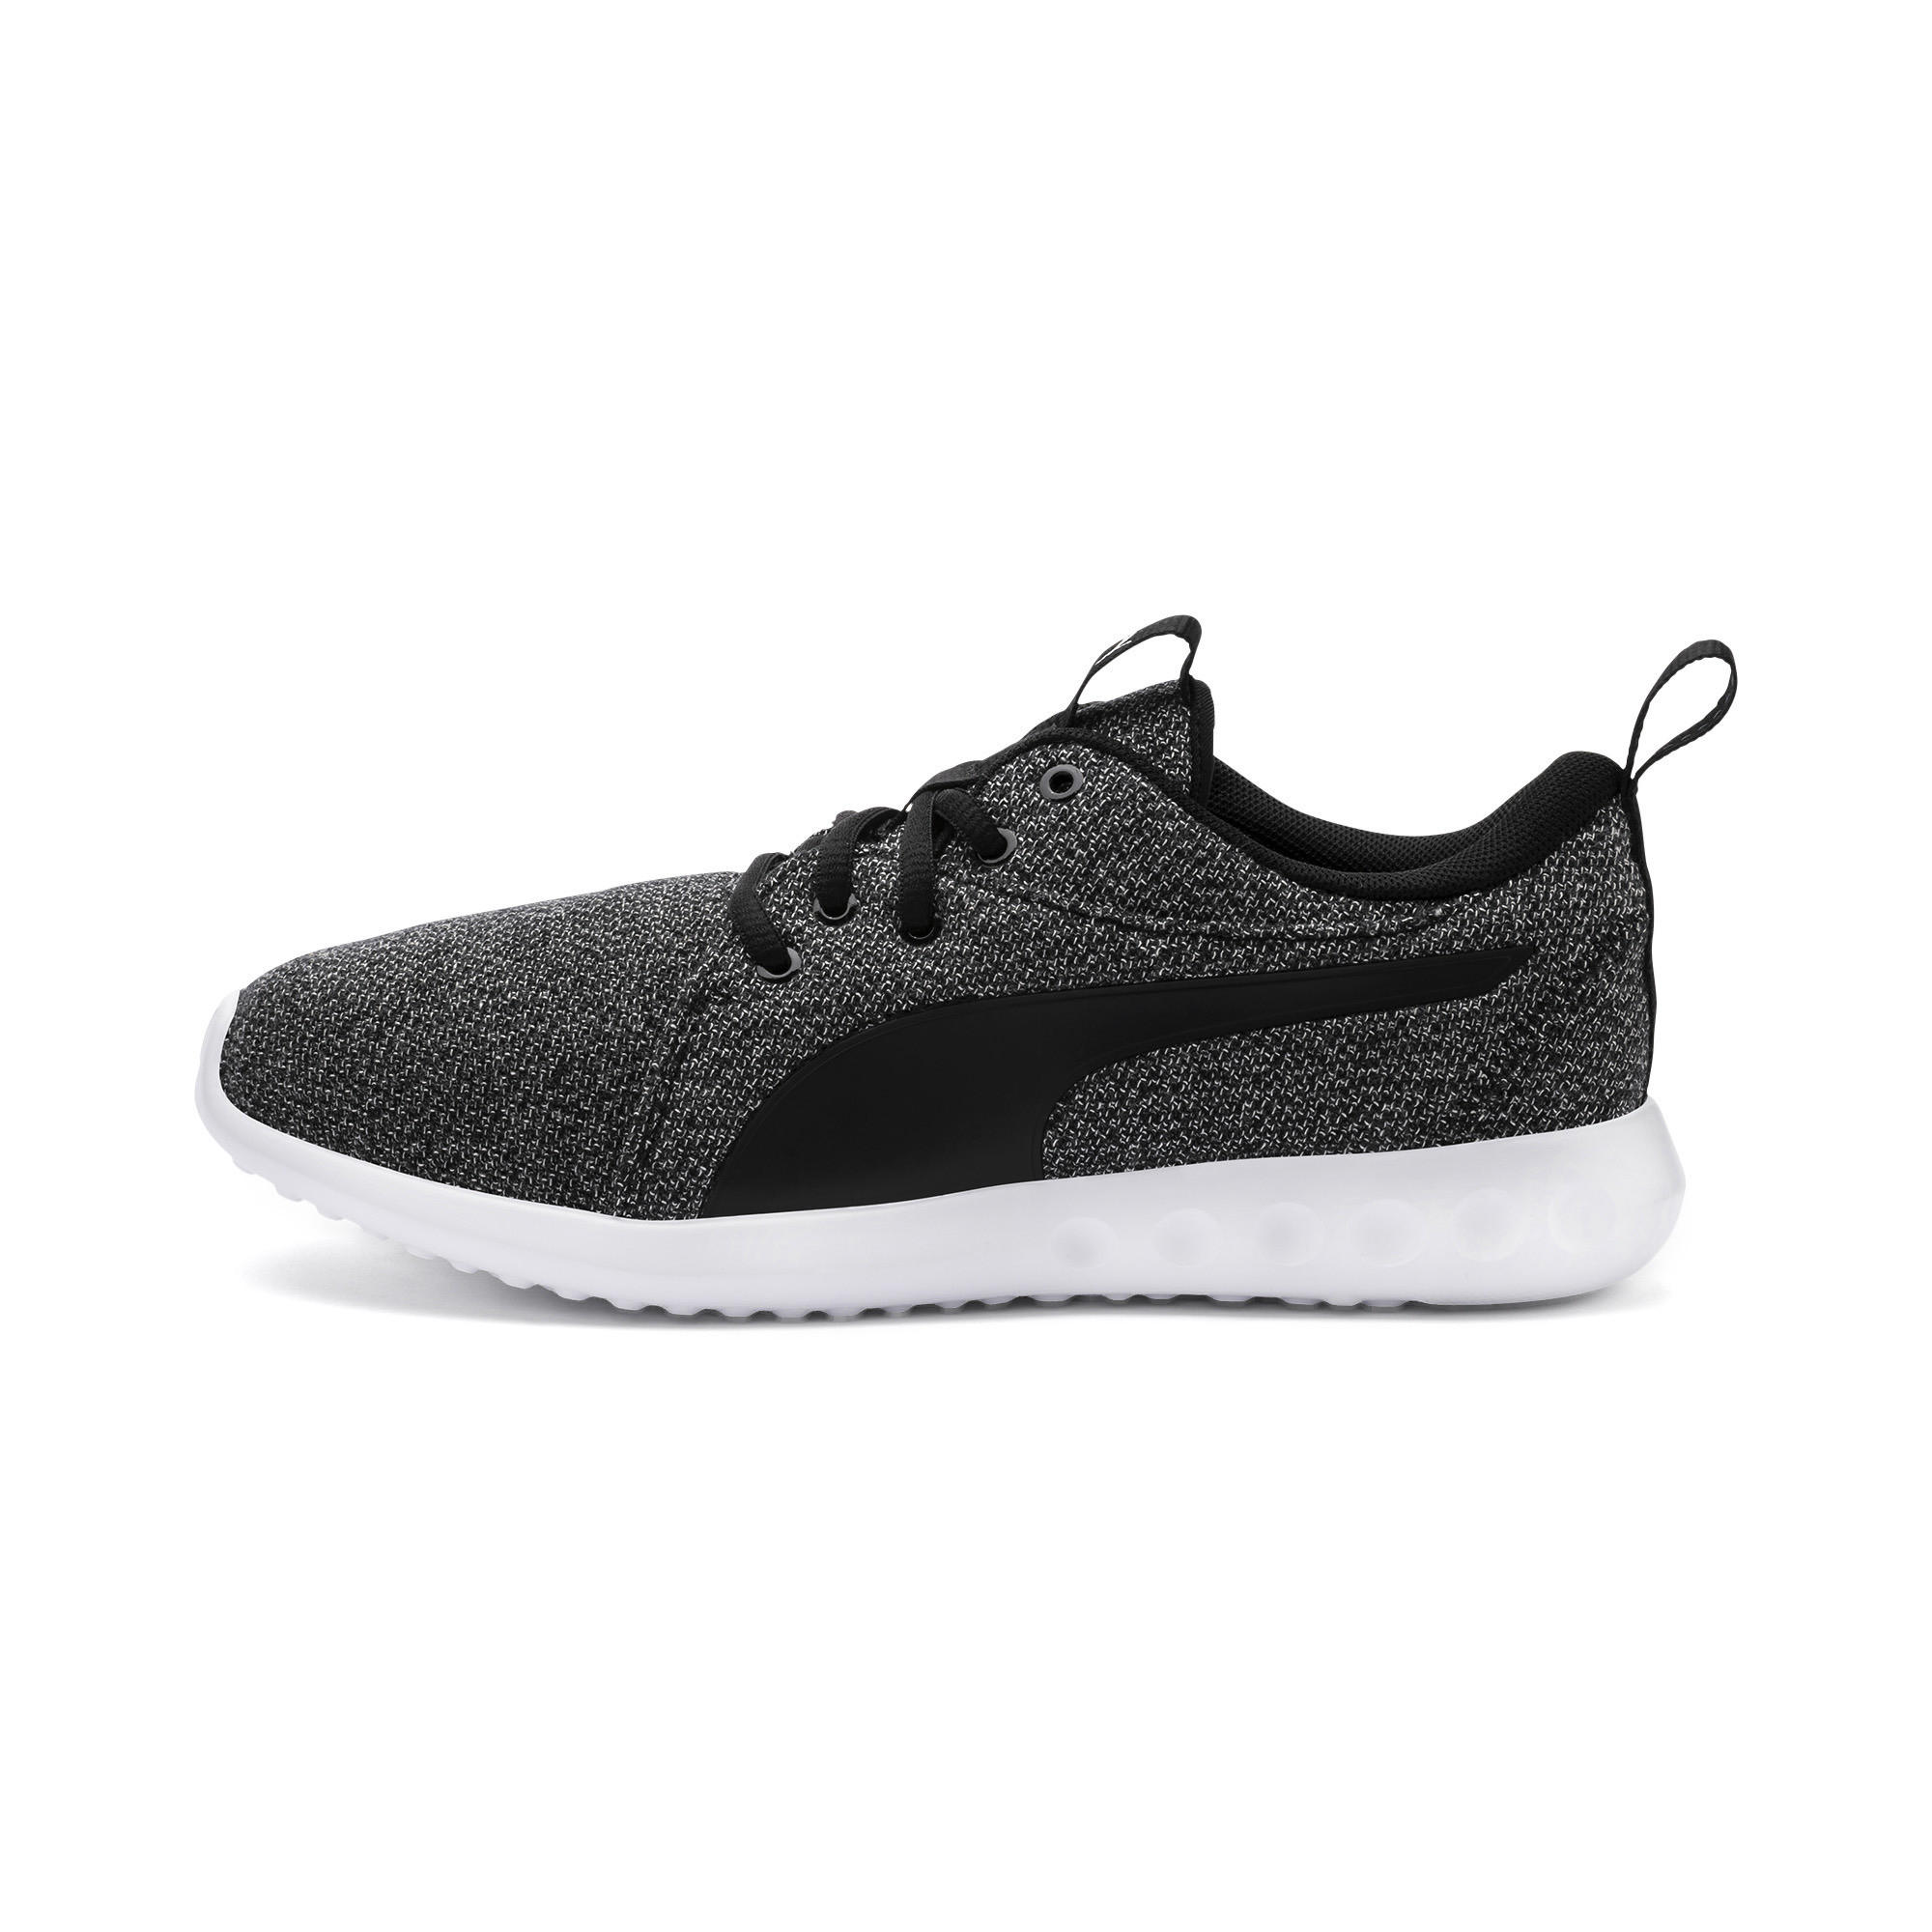 PUMA-Women-039-s-Carson-2-Knit-Running-Shoes thumbnail 23